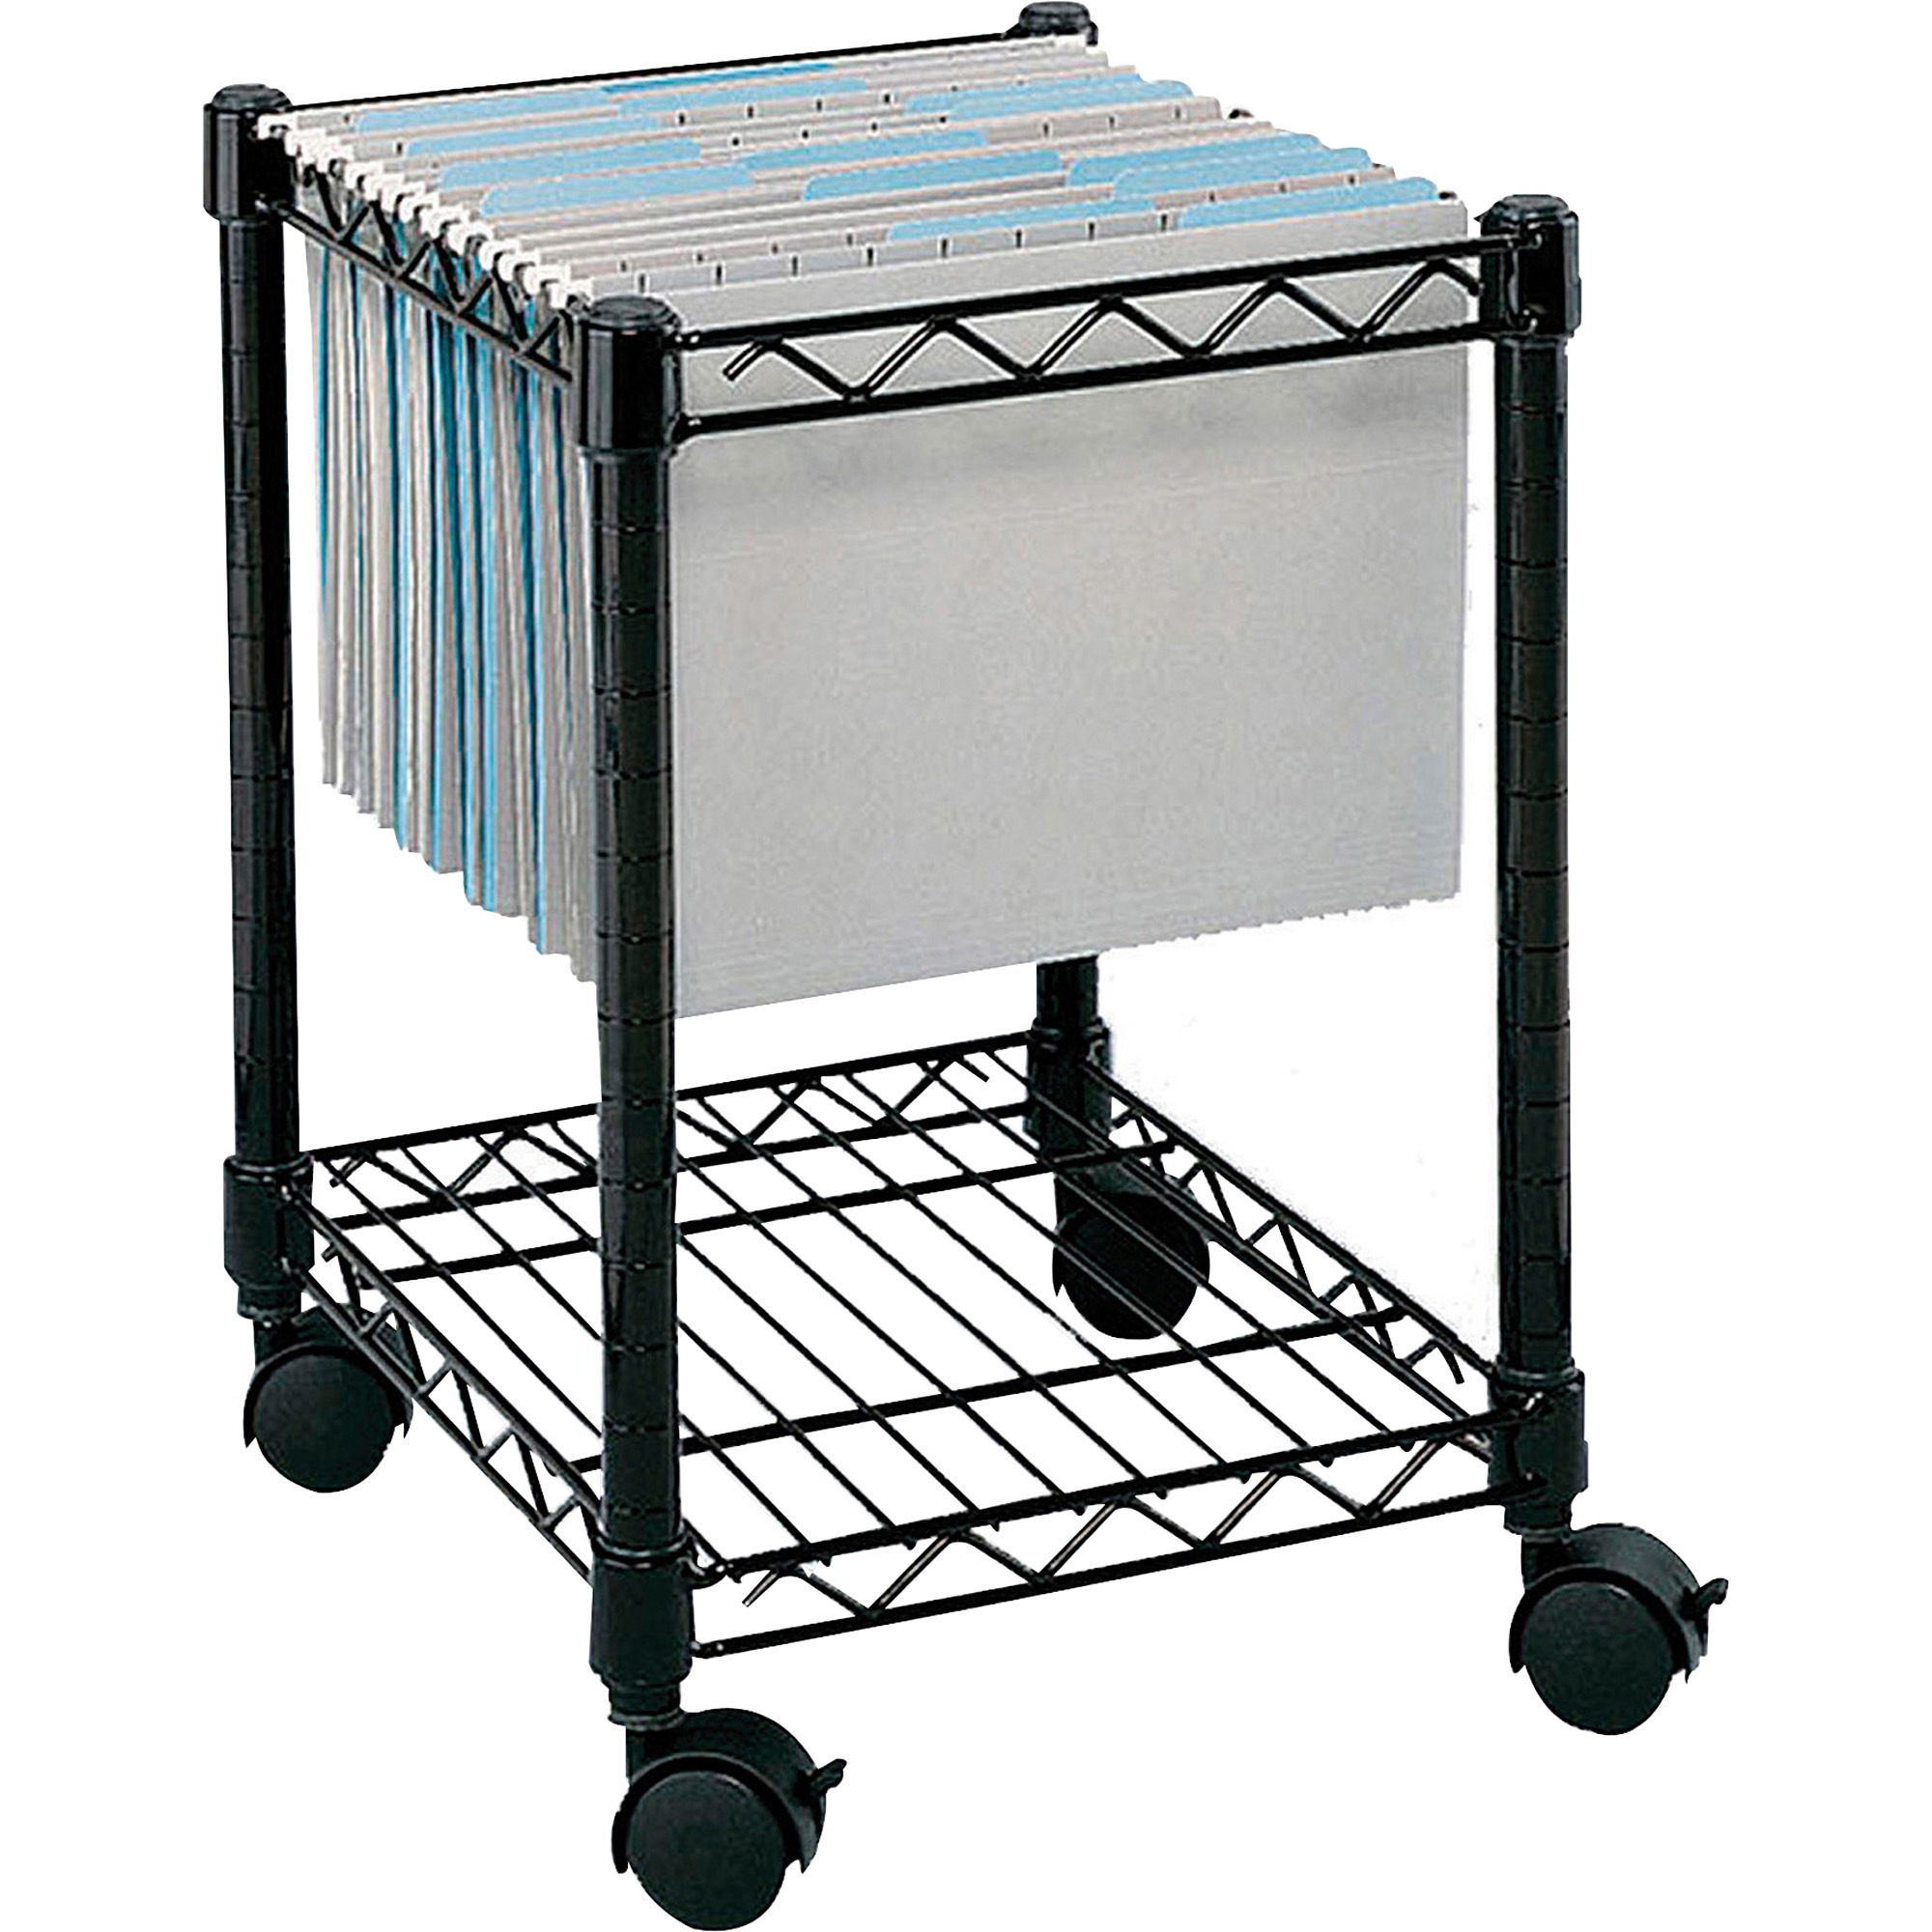 mobile file cart west coast office supplies furniture filing storage 23437